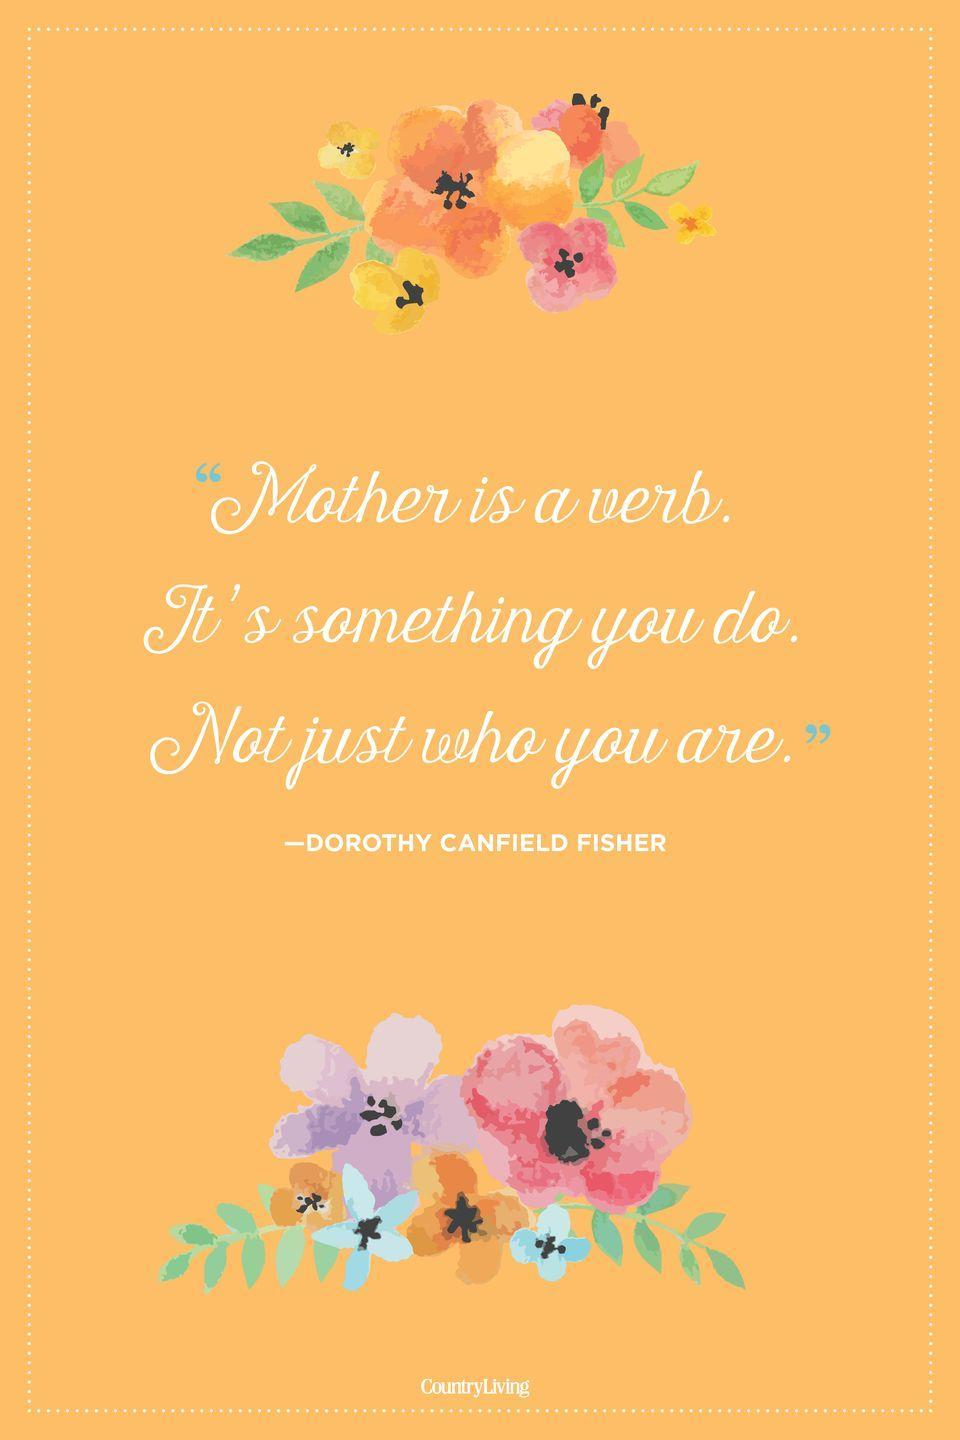 "<p>""Mother is a verb. It's something you do. Not just who you are.""</p>"